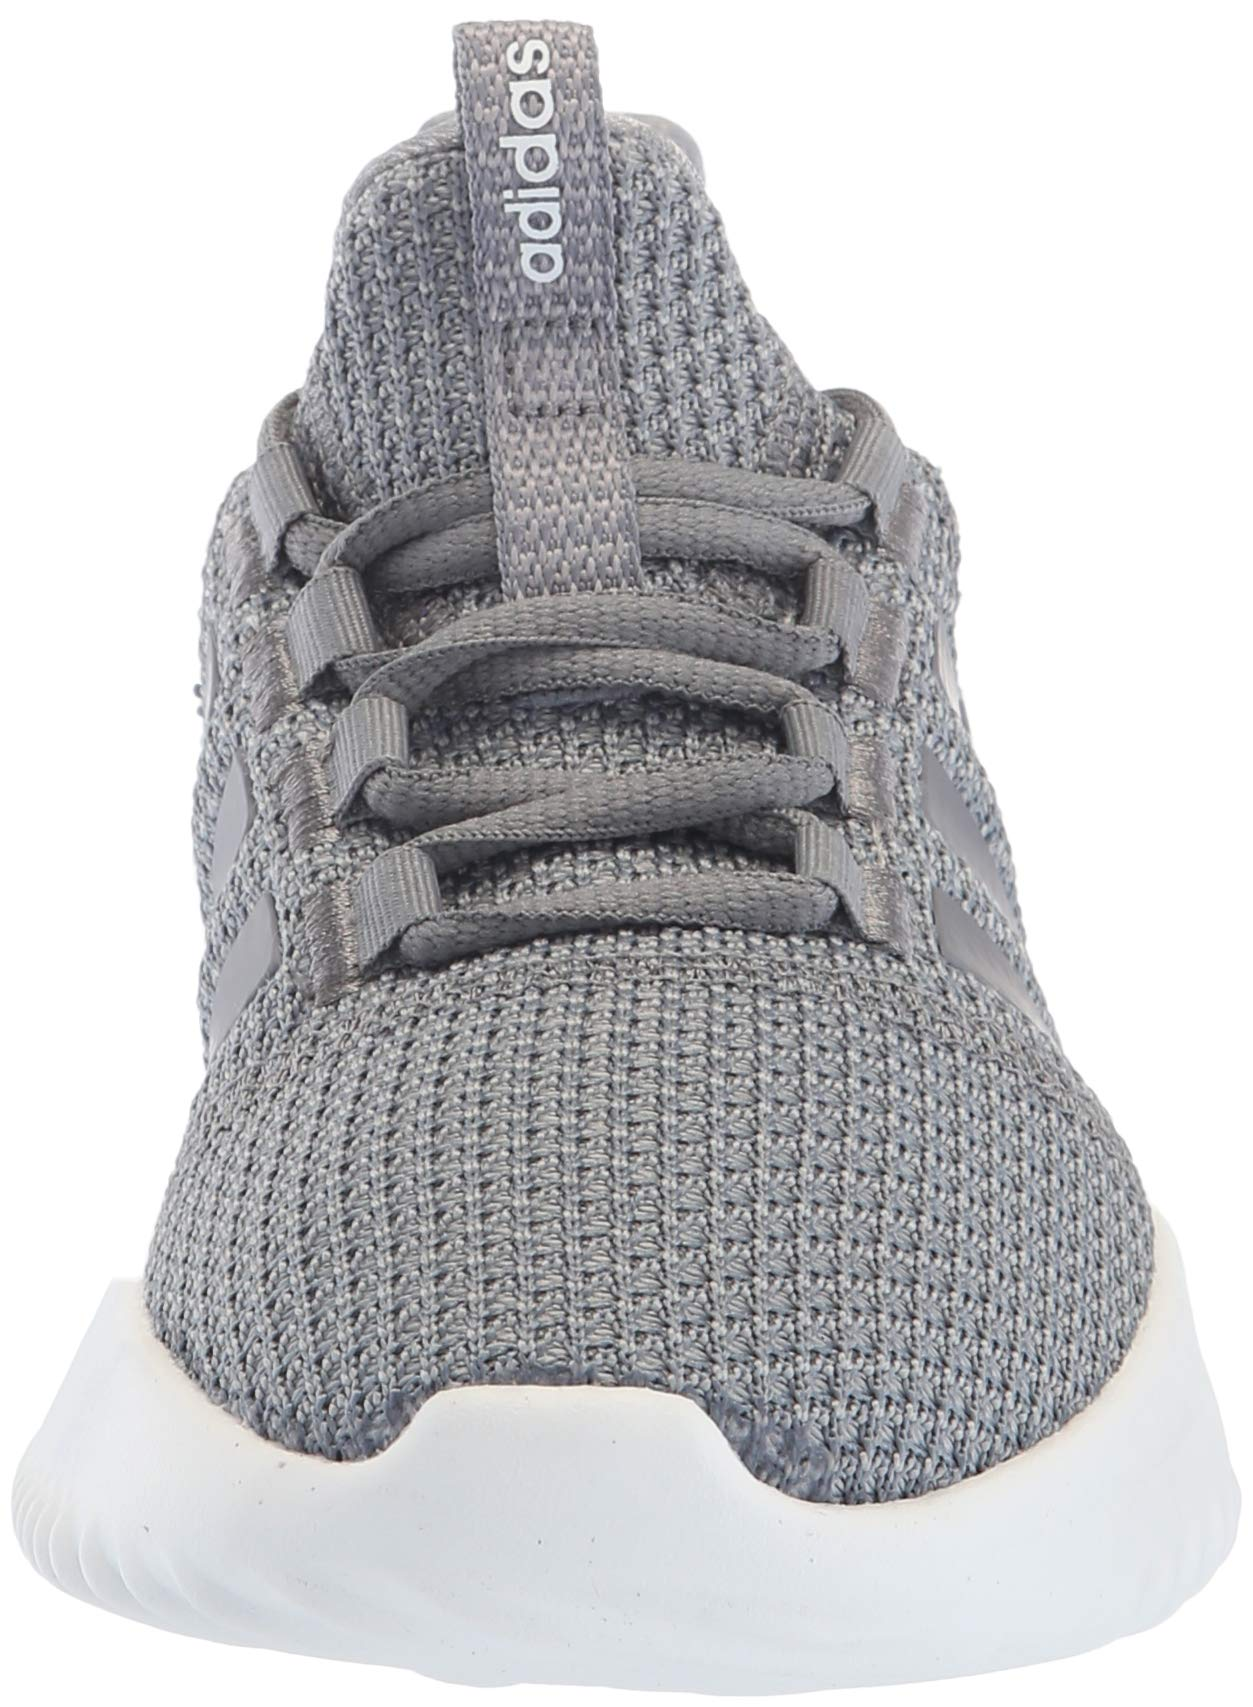 adidas Kids' Cloudfoam Ultimate Running Shoe, Light Granite/Grey/Onix, 2.5 M US Little Kid by adidas (Image #2)